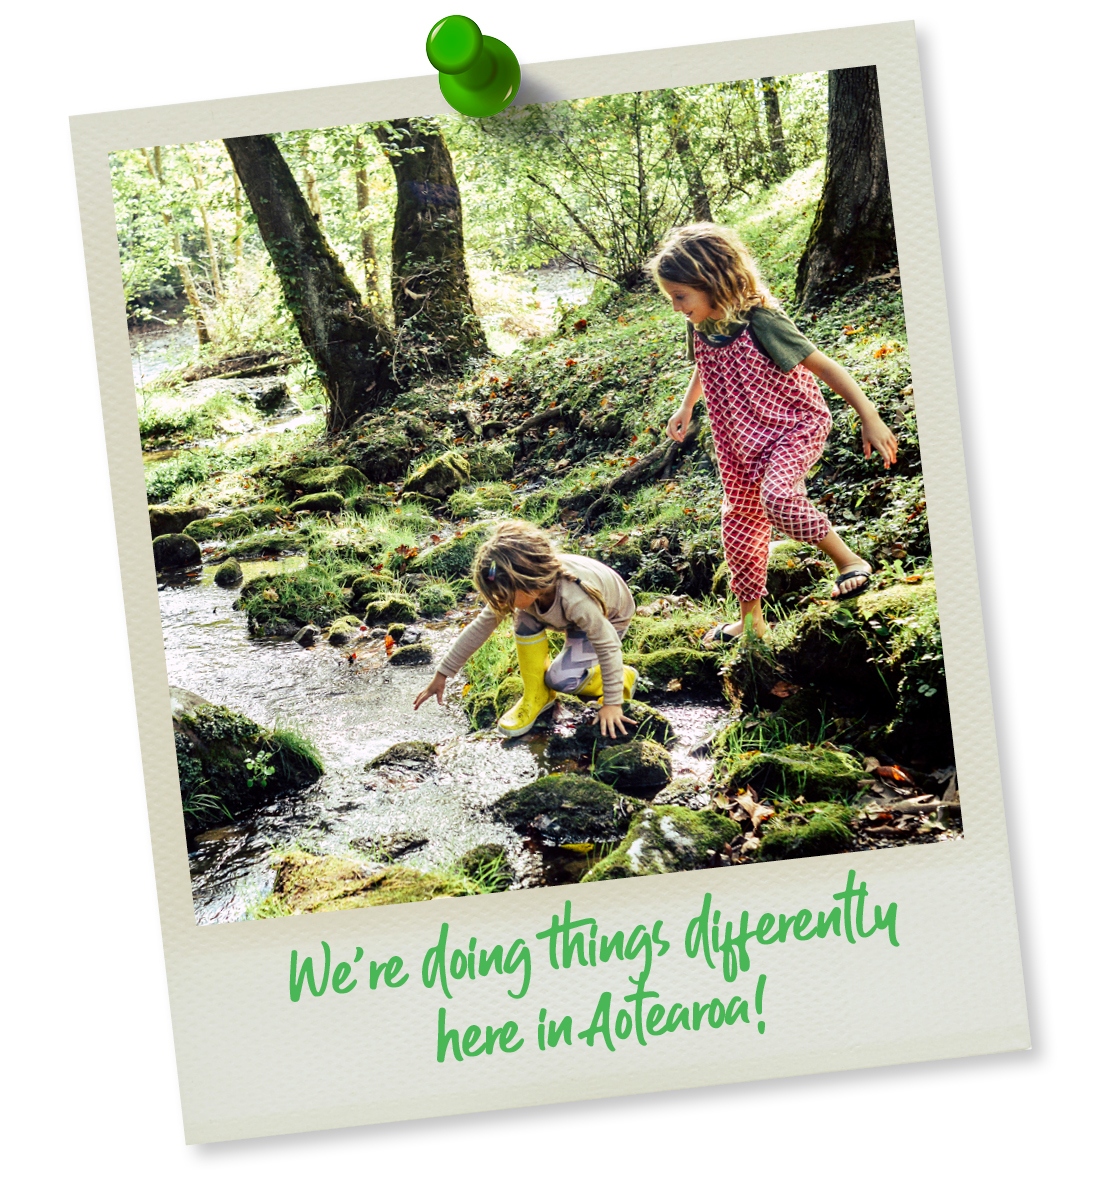 picture of children crossing a stream. text reads we're doing things differently.